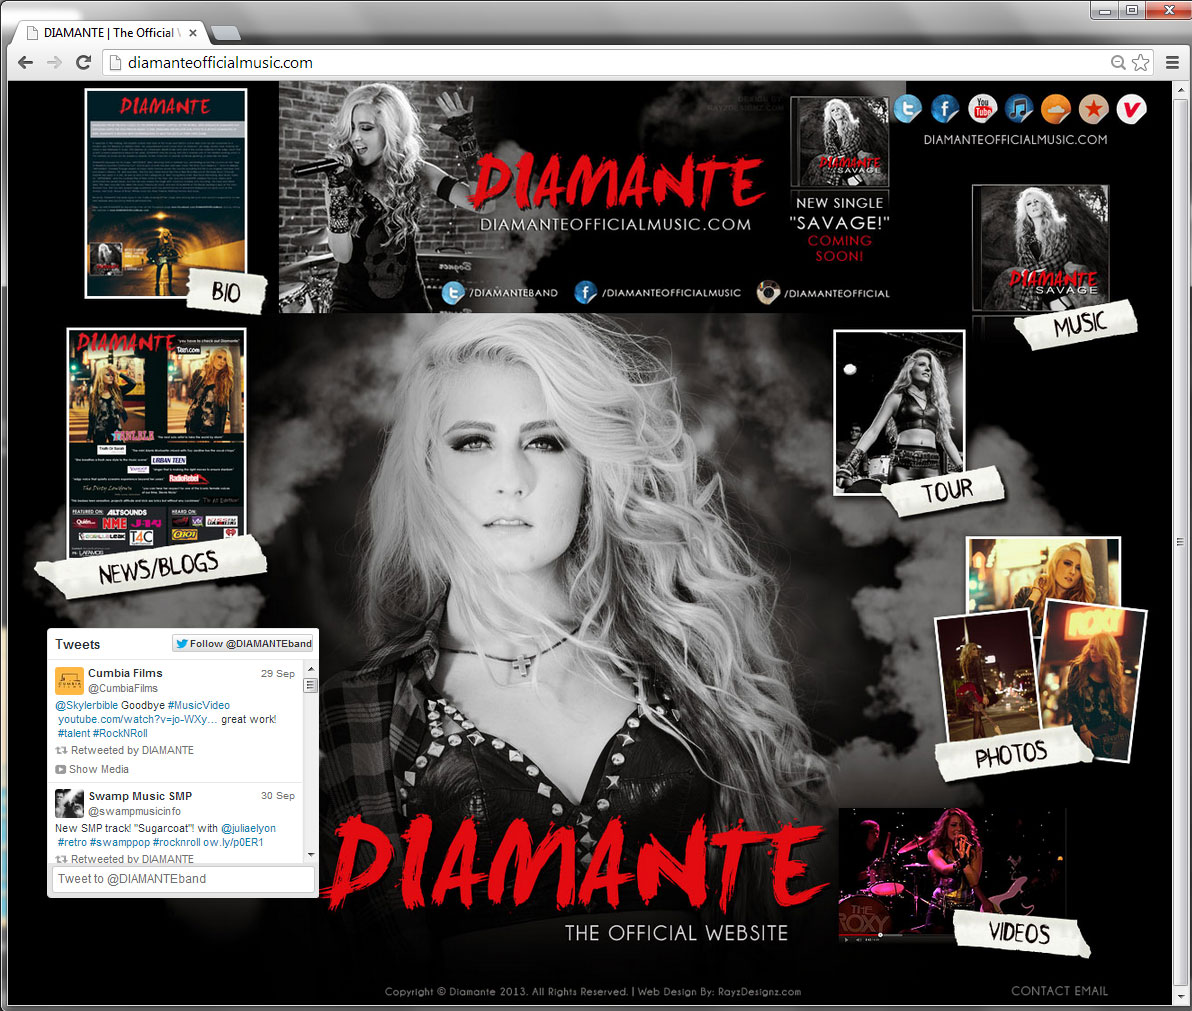 DIAMANTE_websitecapoct2013